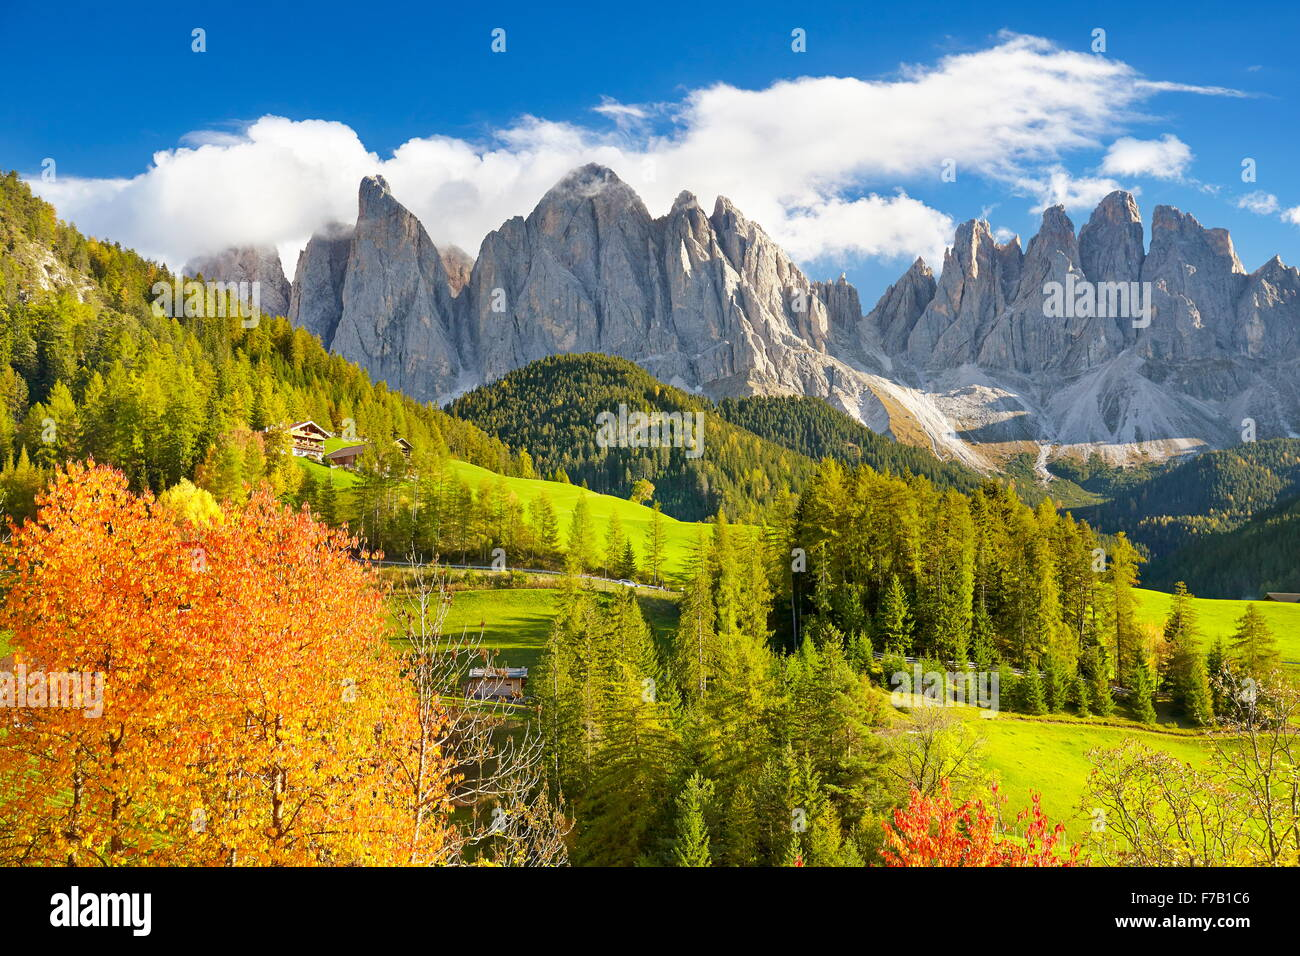 Val Di Funes, Tyrol Province, Alps, Dolomites Mountains autumn landscape, Italy - Stock Image